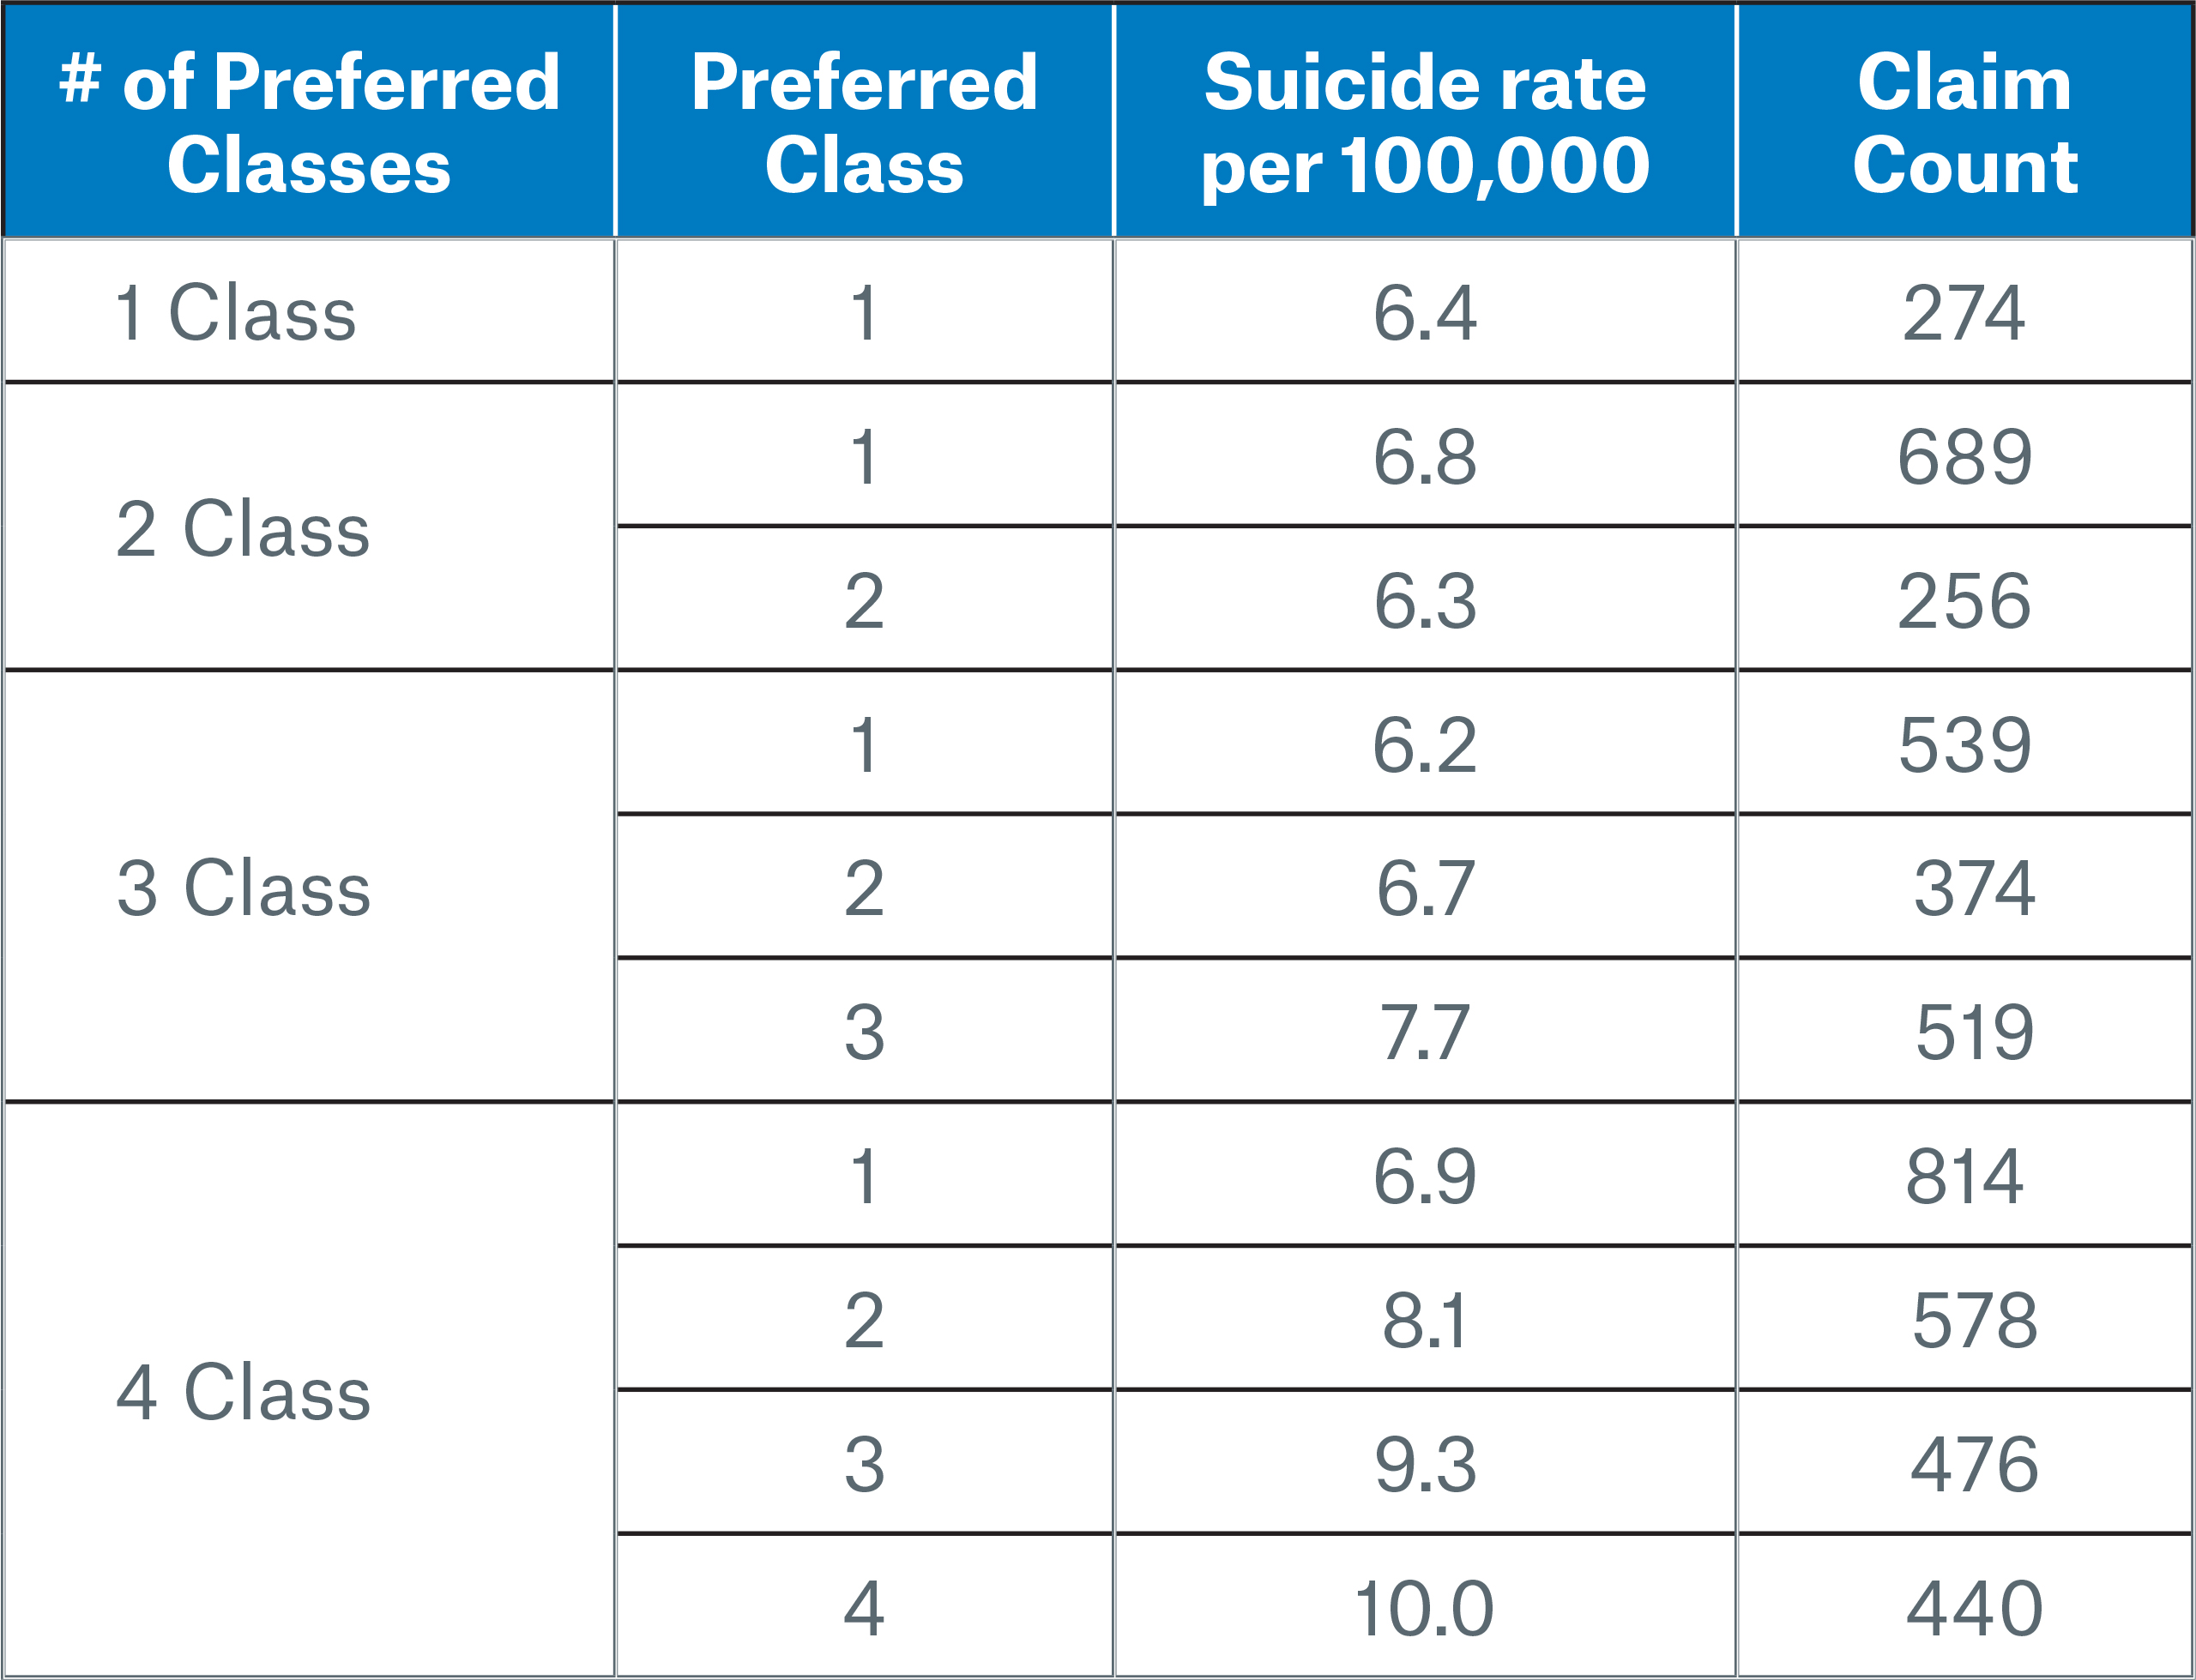 Table 2 Image Preferred class-suicide rate-claim count